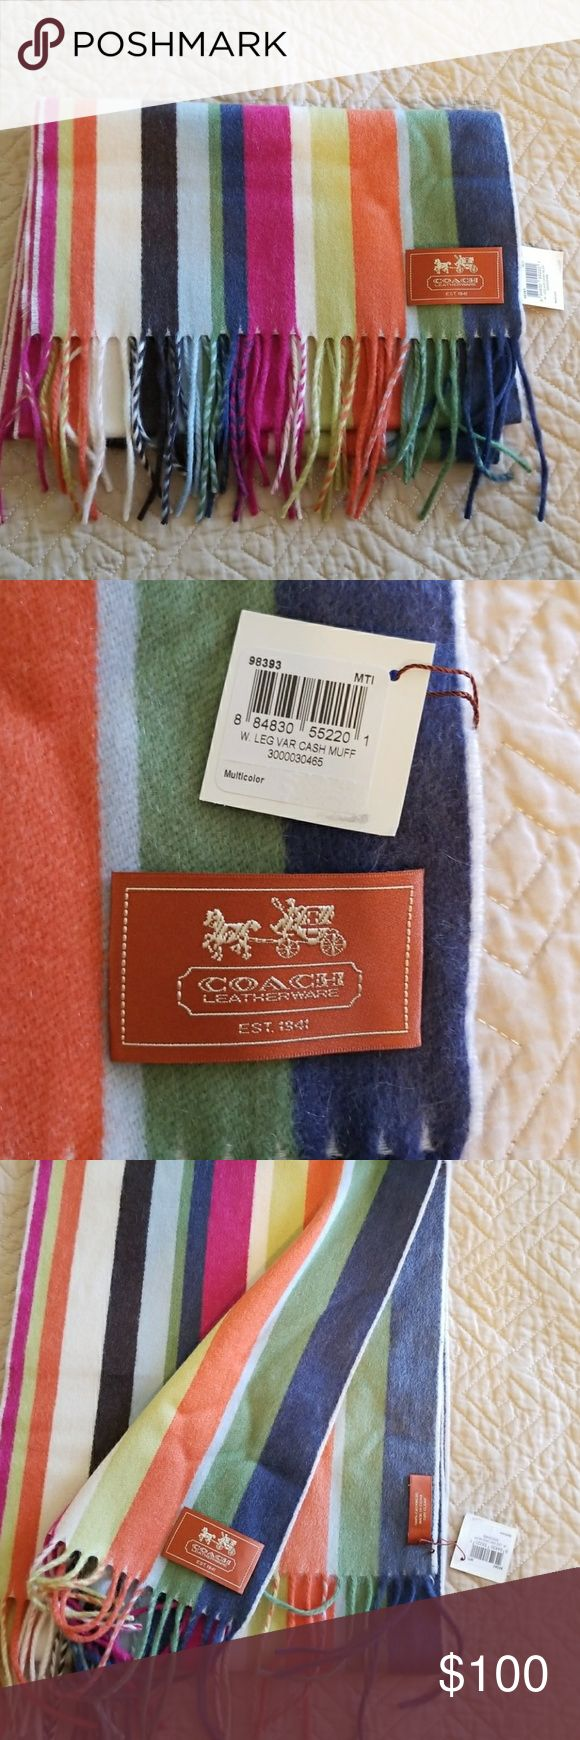 Coach legacy cashmere scarf. ***BRAND NEW WITH TAGS!!!! - I bought it and never used it.  - Box not included. Coach legacy cashmere scarf. Coach Accessories Scarves & Wraps